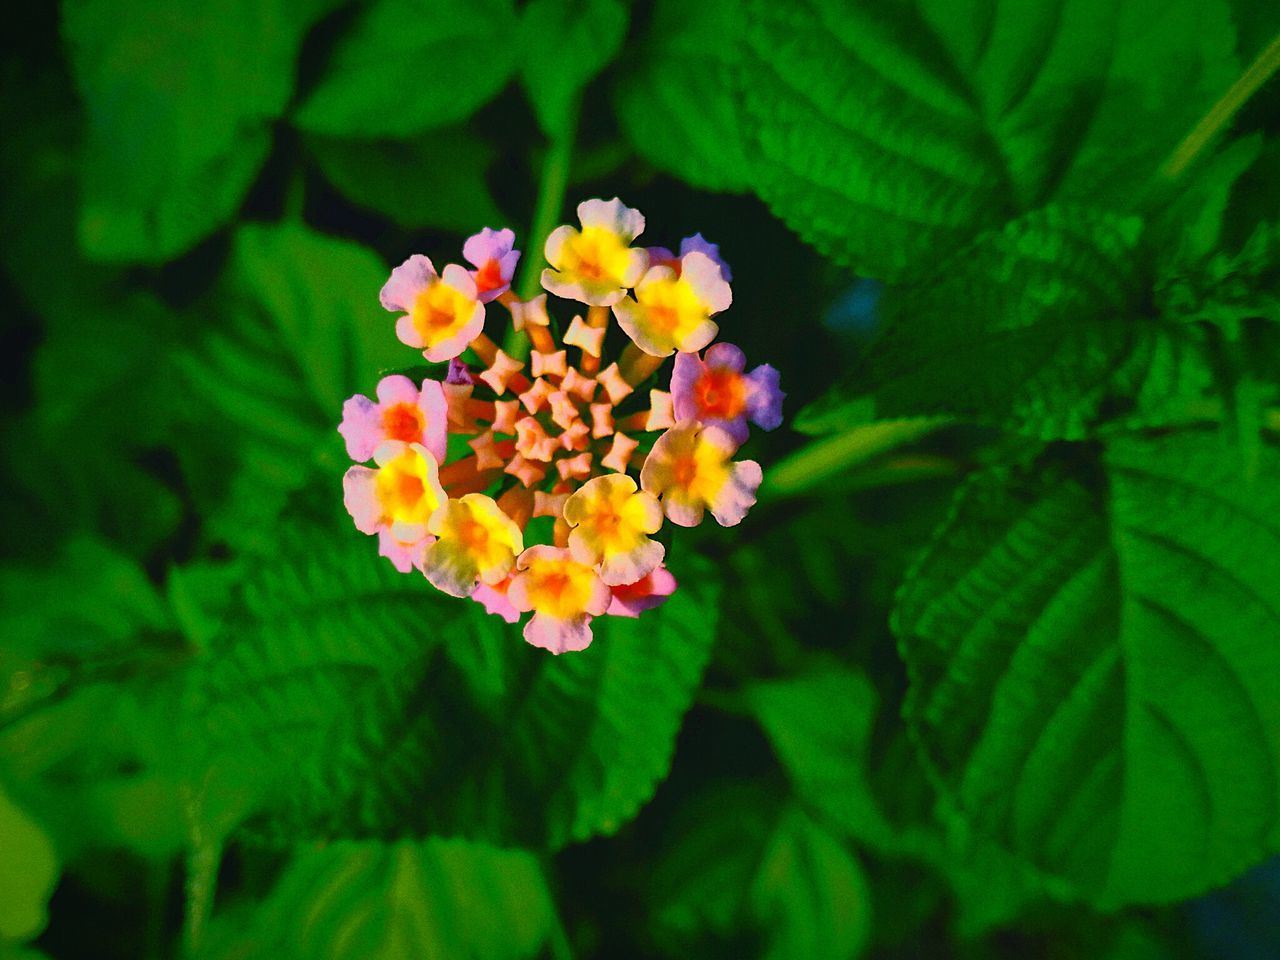 flower, growth, nature, beauty in nature, freshness, fragility, plant, green color, leaf, petal, lantana camara, blooming, outdoors, flower head, day, park - man made space, no people, close-up